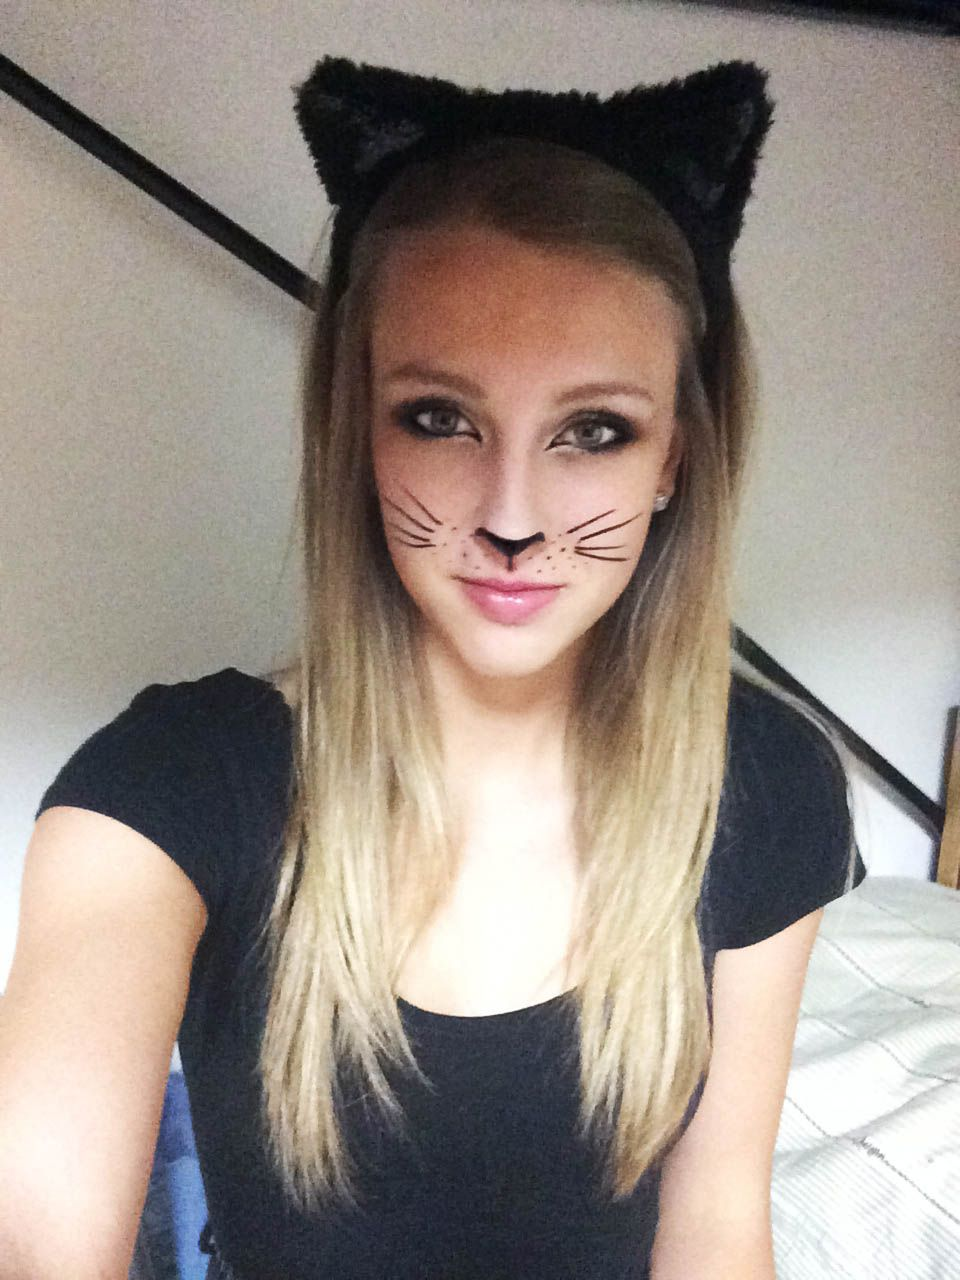 halloween kitty cat costume. cat makeup and cat ears | Style ...